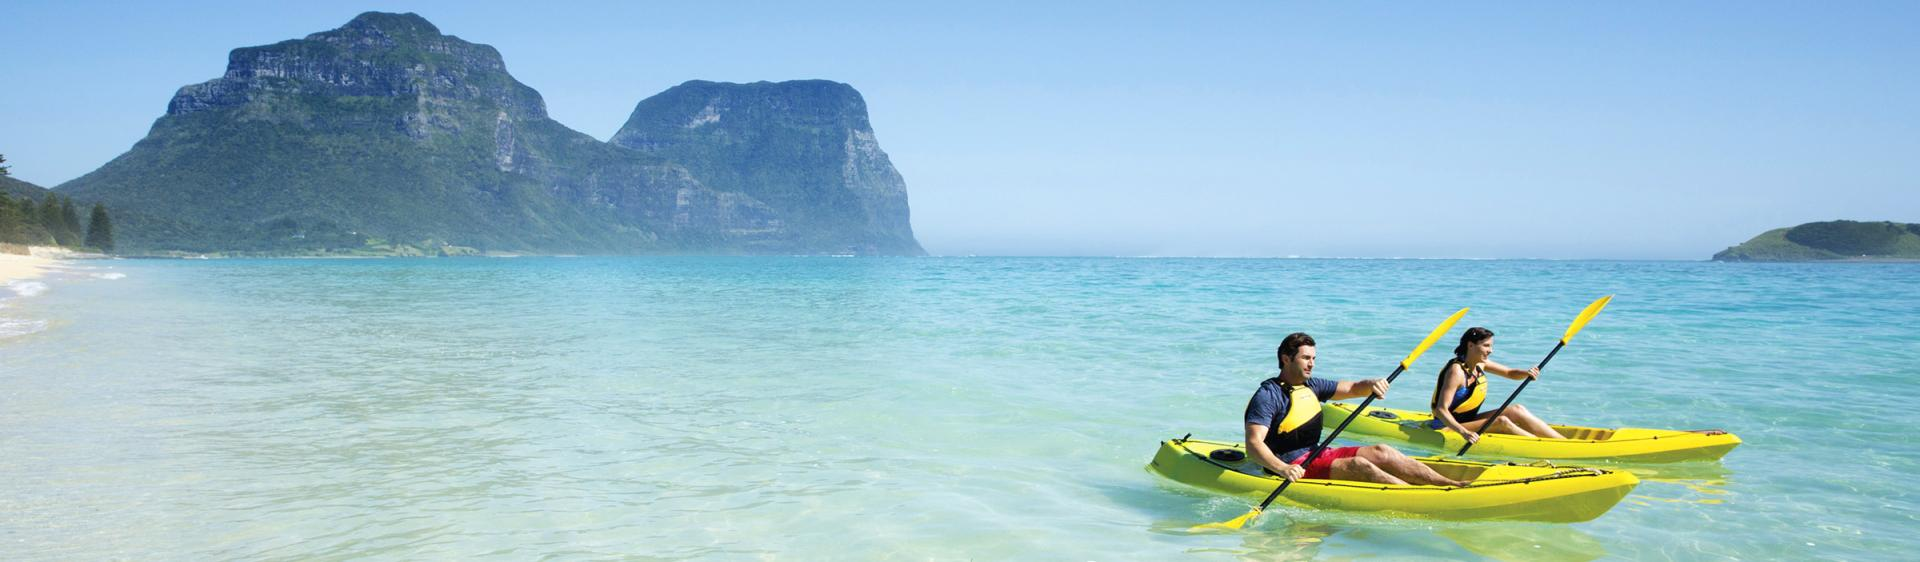 Kayaking on Lord Howe Island